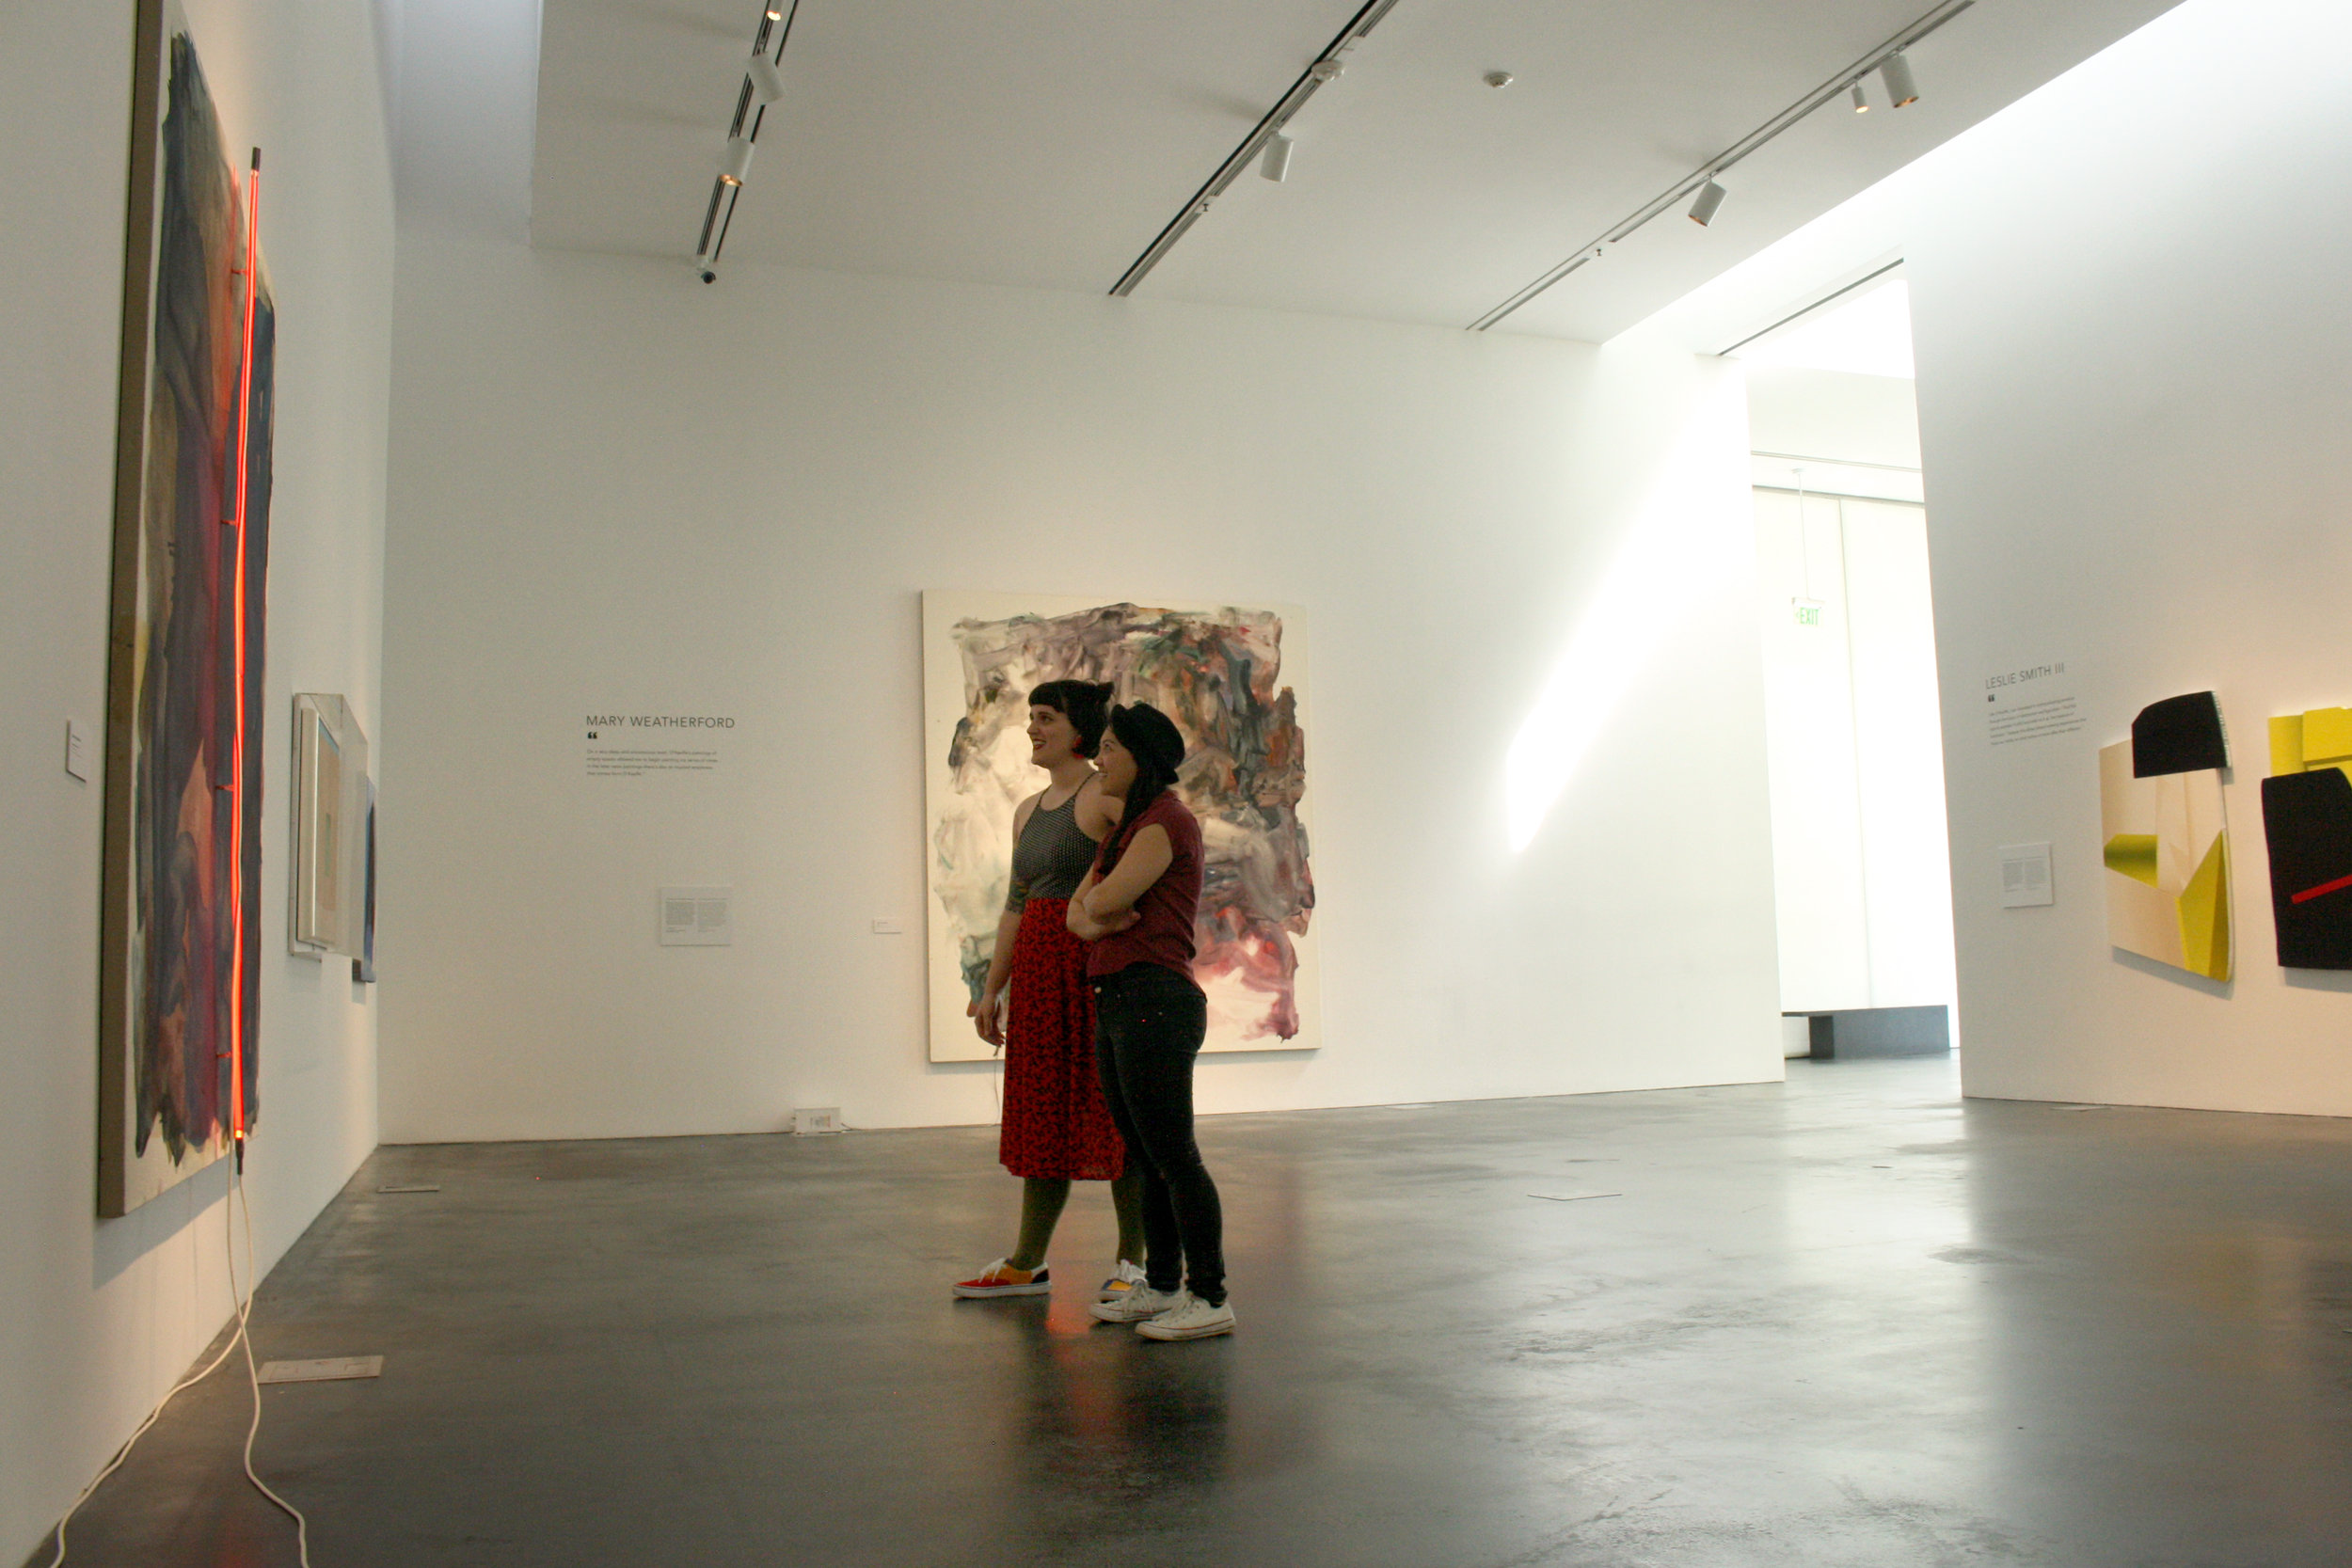 Date4_Carolyn Michaels and Jenna Moll Reyes in Between Us. Photo by Cheyenne Michaels.jpg